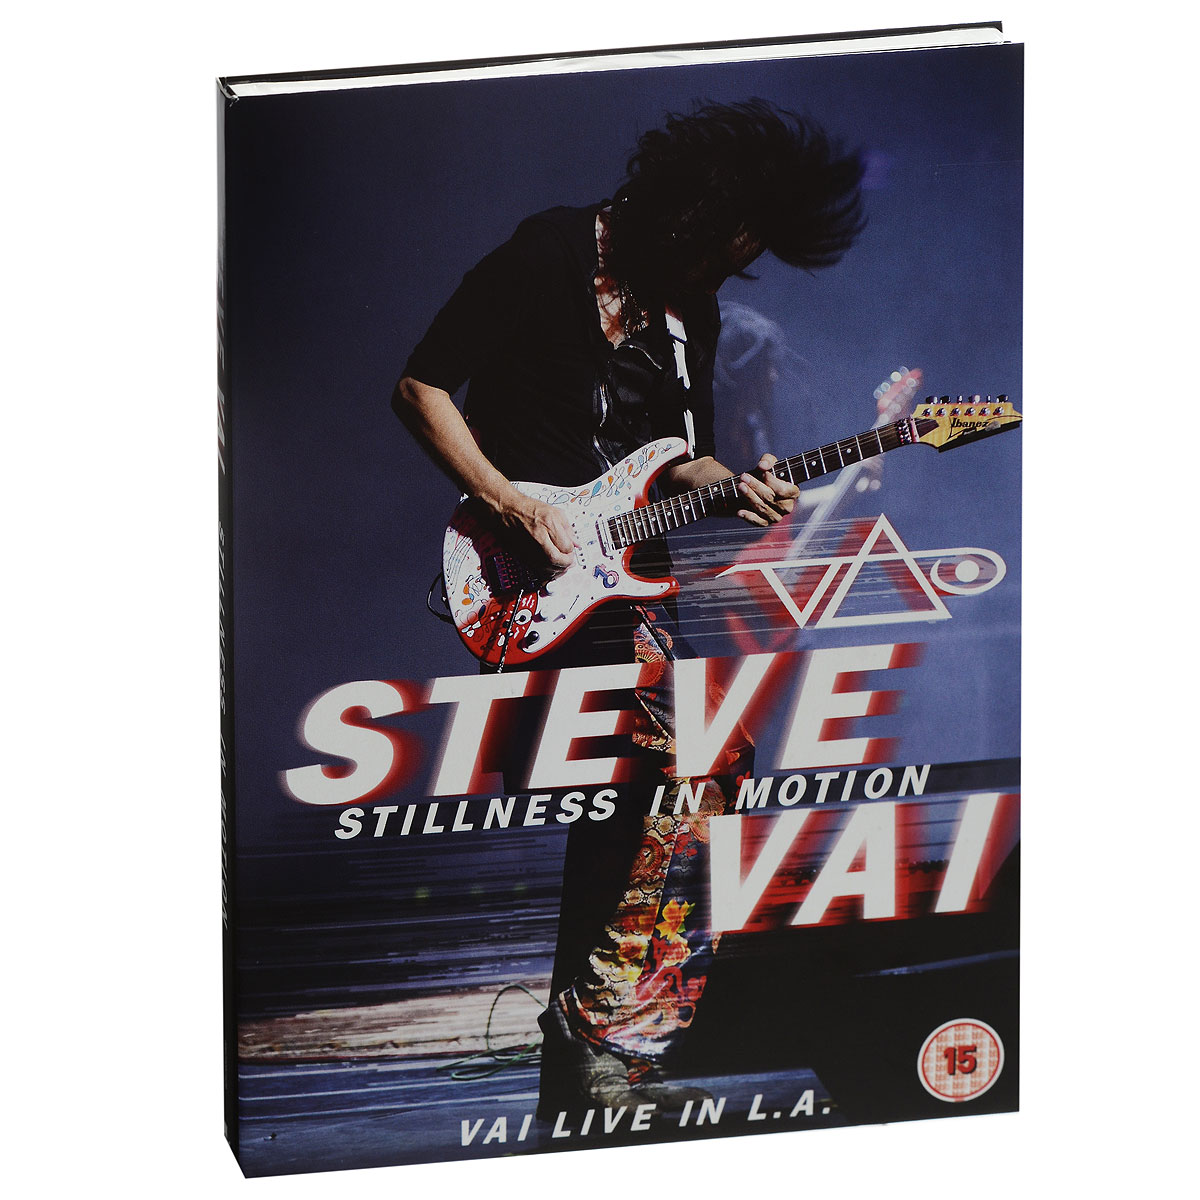 Steve Vai. Stillness In Motion. Vai Live In L.A. (2 DVD)